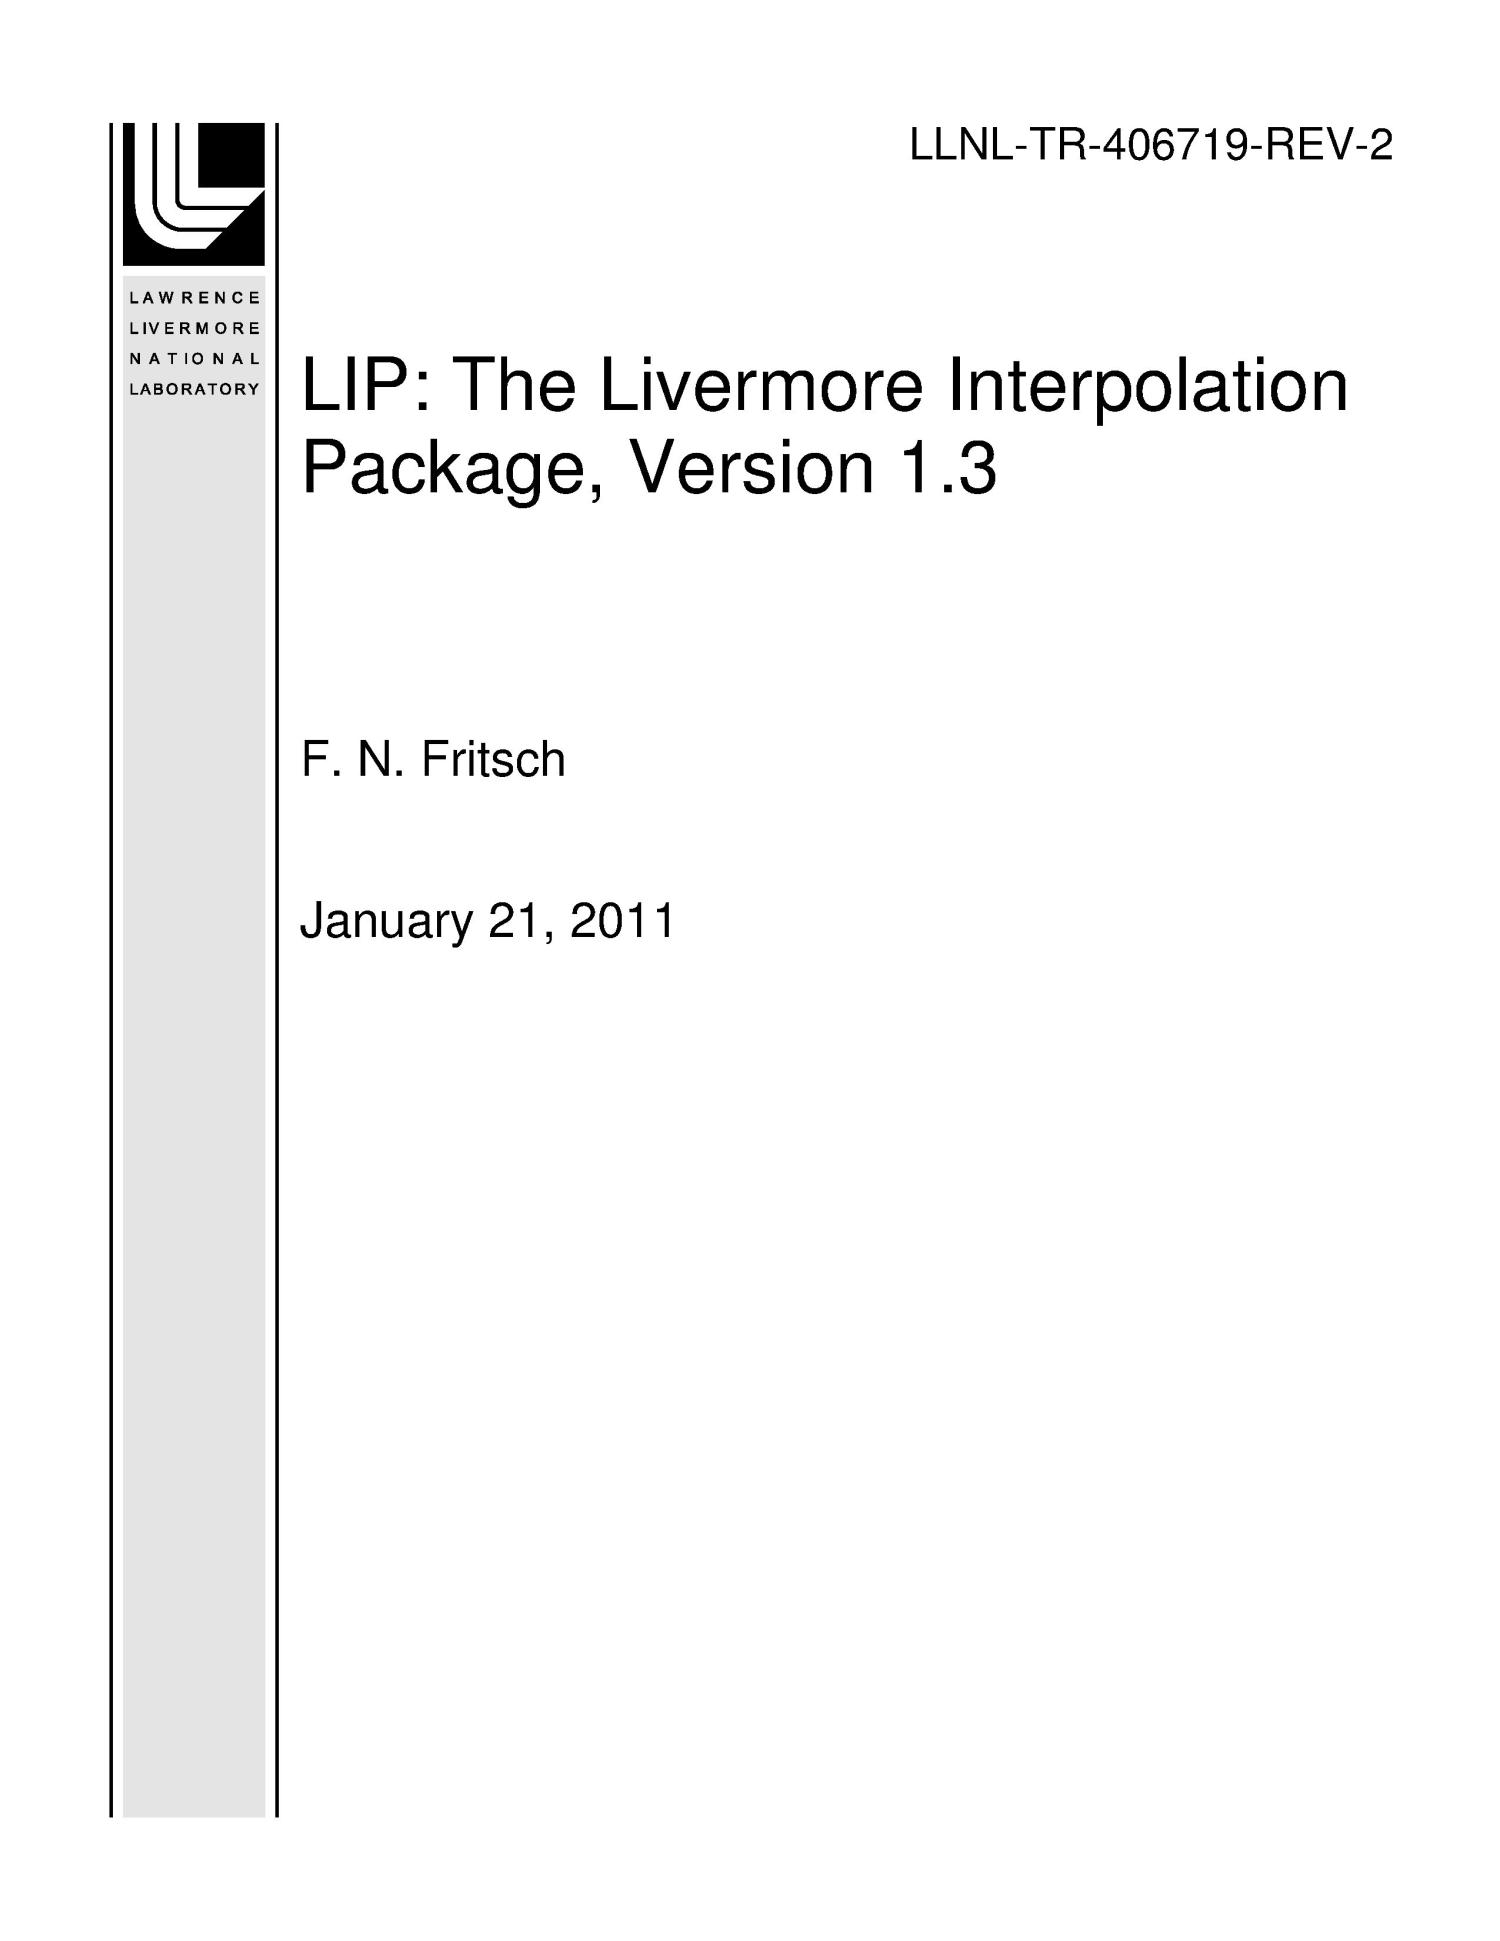 LIP: The Livermore Interpolation Package, Version 1 3